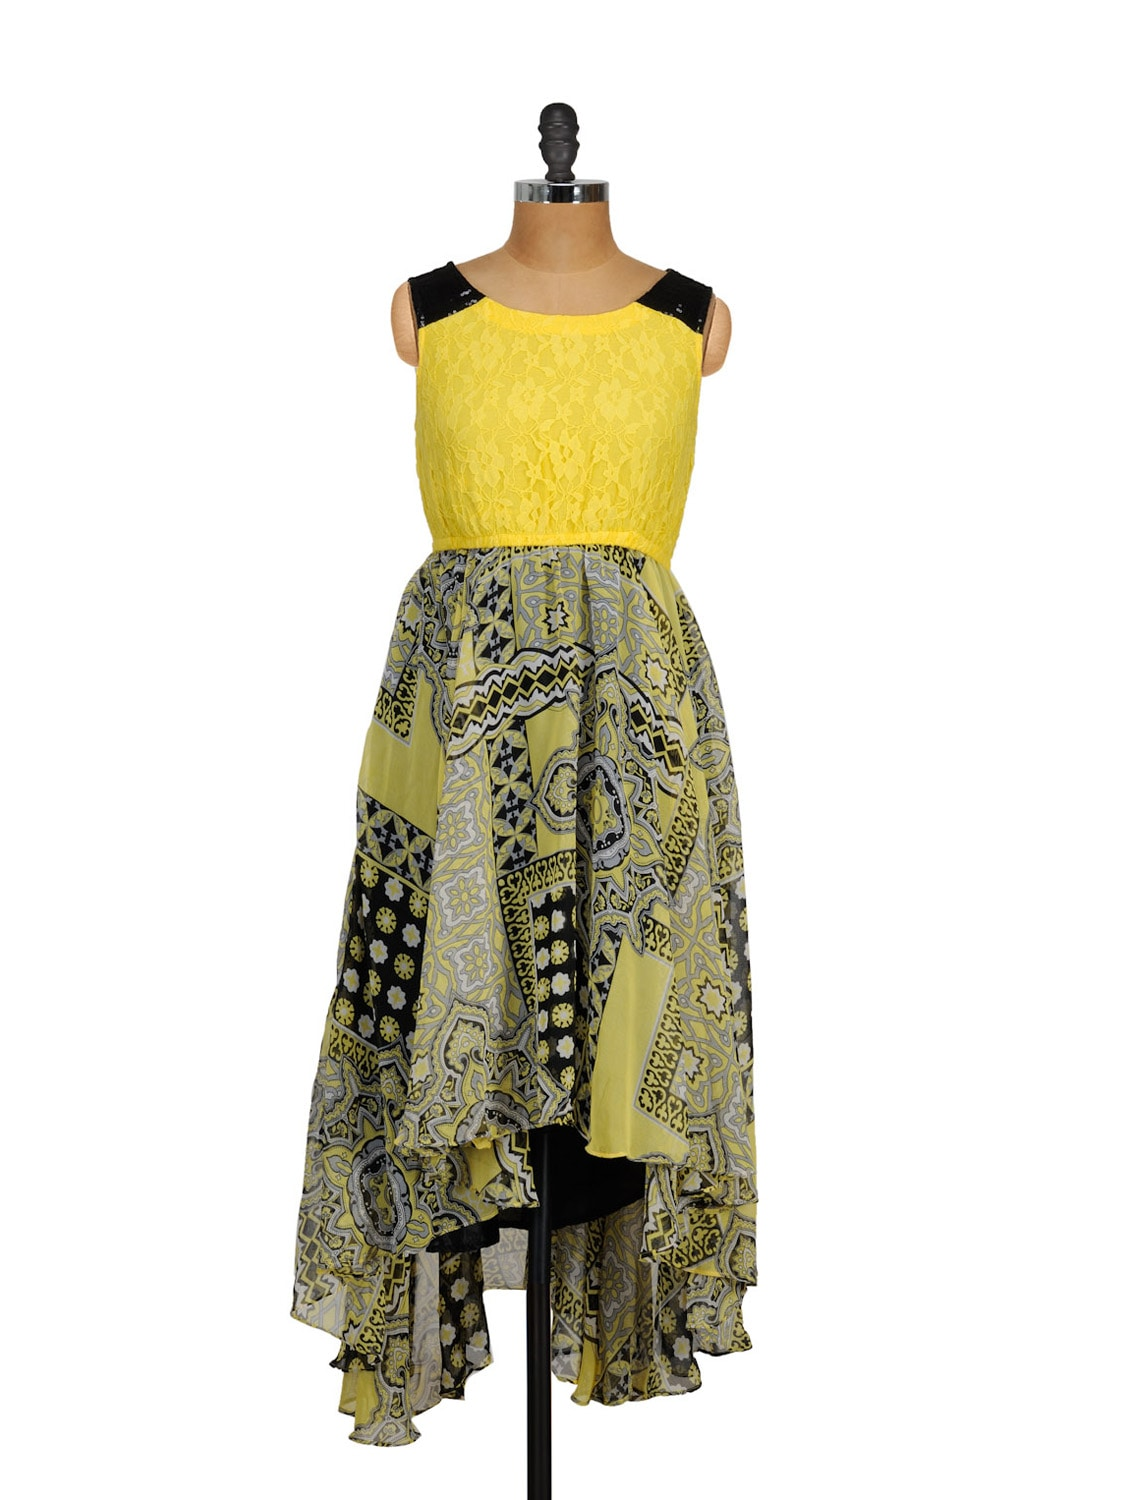 Arabesque Print Asymmetrical Dress - Shakumbhari